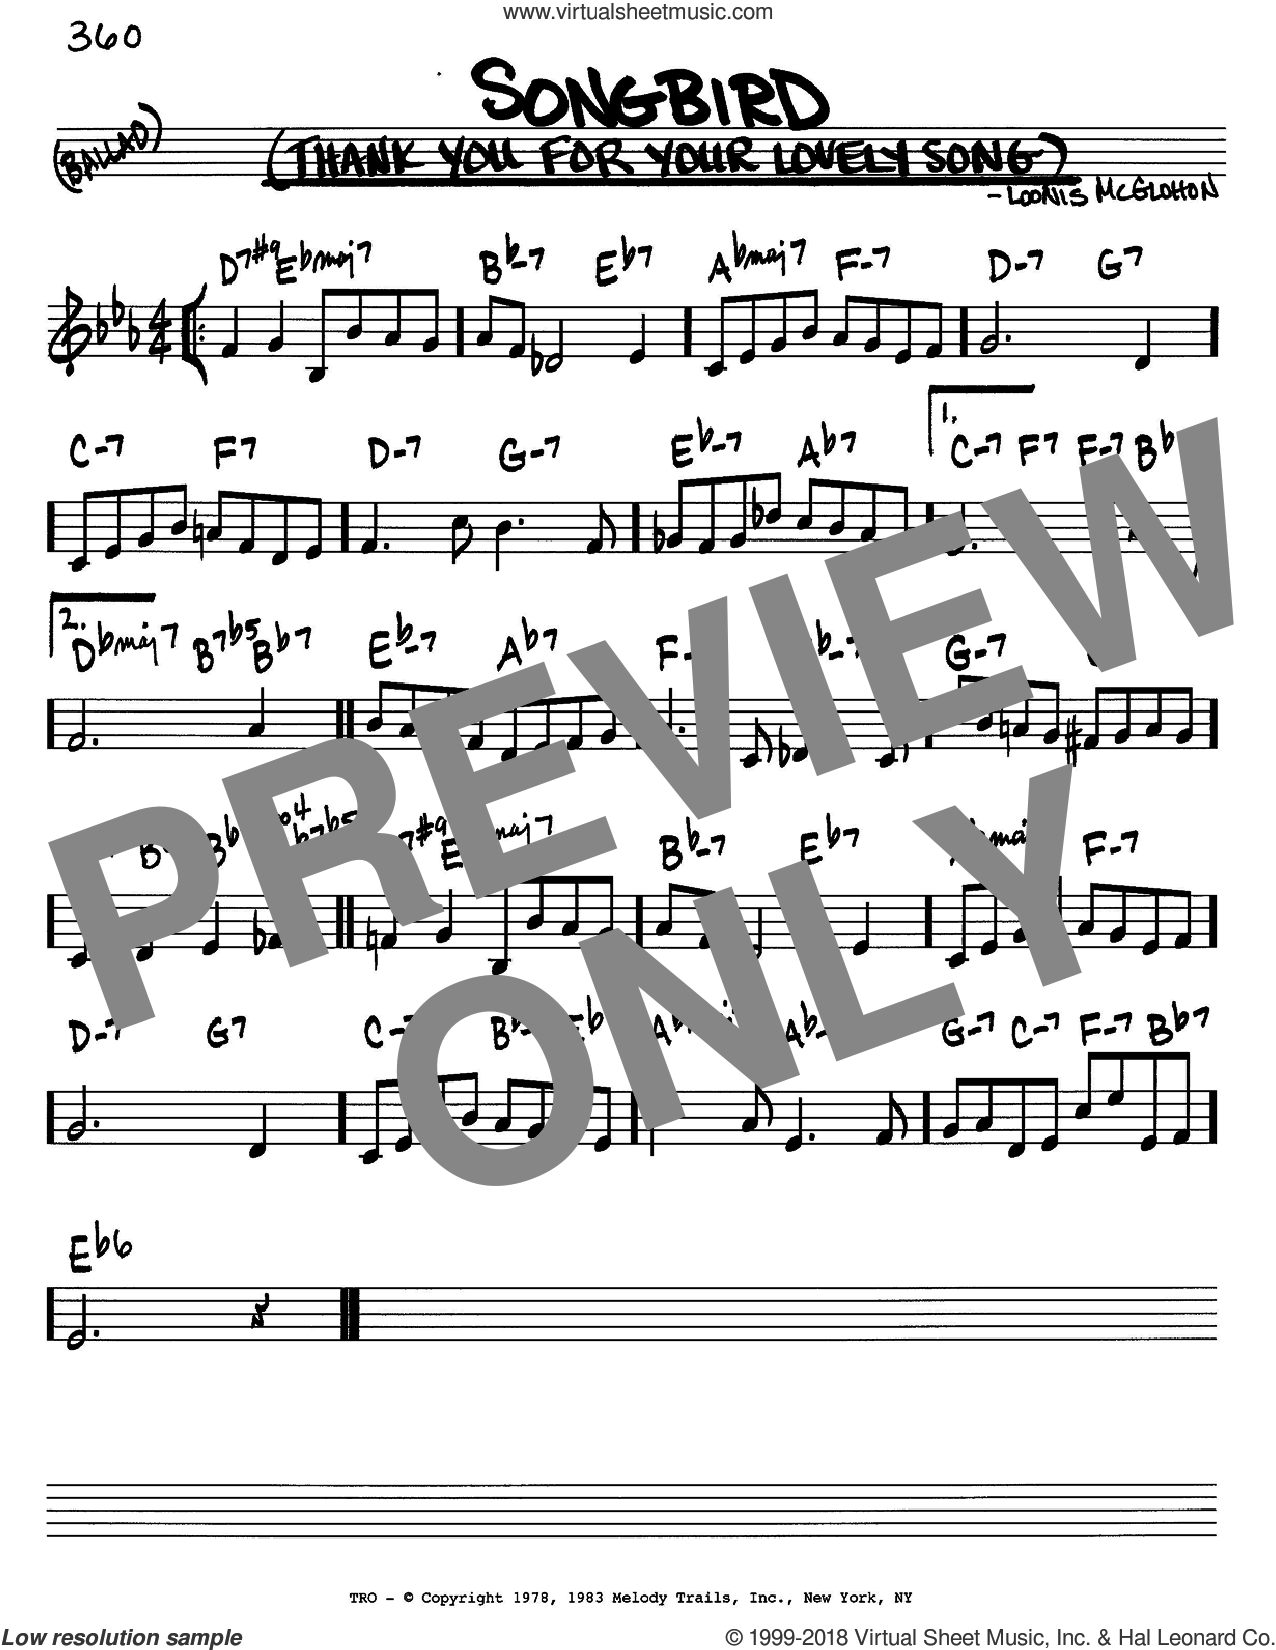 Songbird (Thank You For Your Lovely Song) sheet music for voice and other instruments (C) by Loonis McGlohon. Score Image Preview.